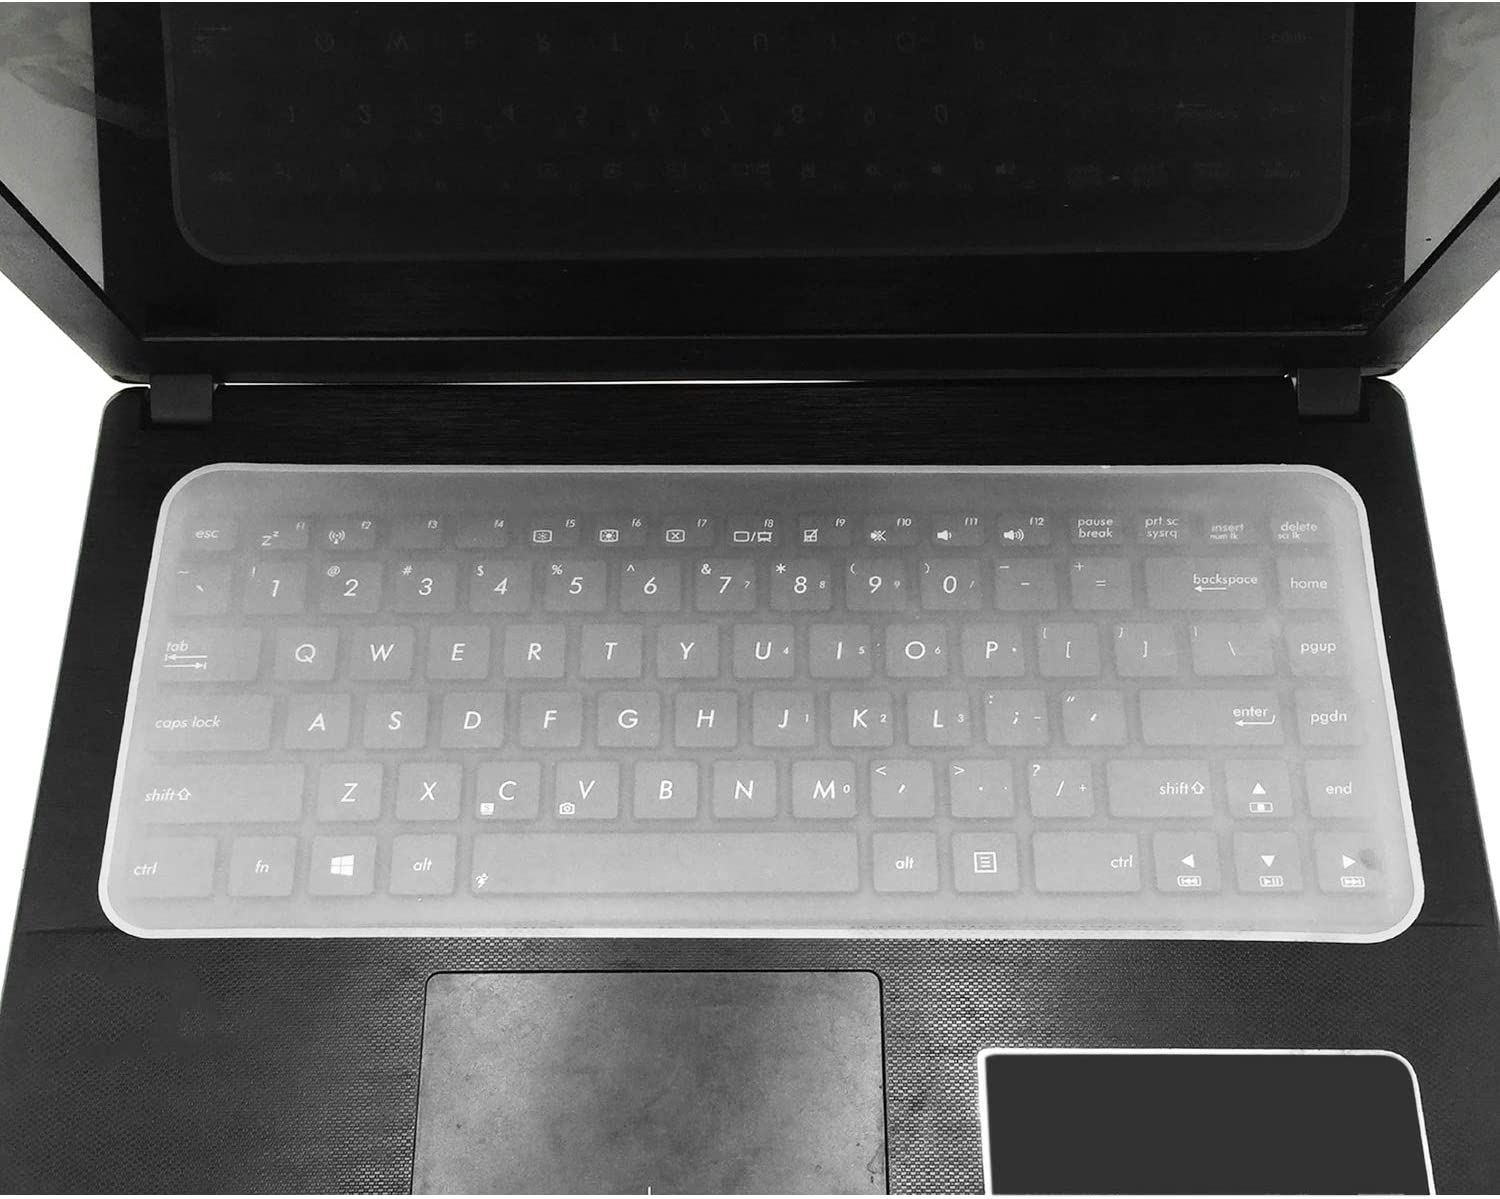 Silicone Notebook Protector Waterproof Laptop Keyboard Cover Dustproof Film 14,15//17 Inc,14 Inch